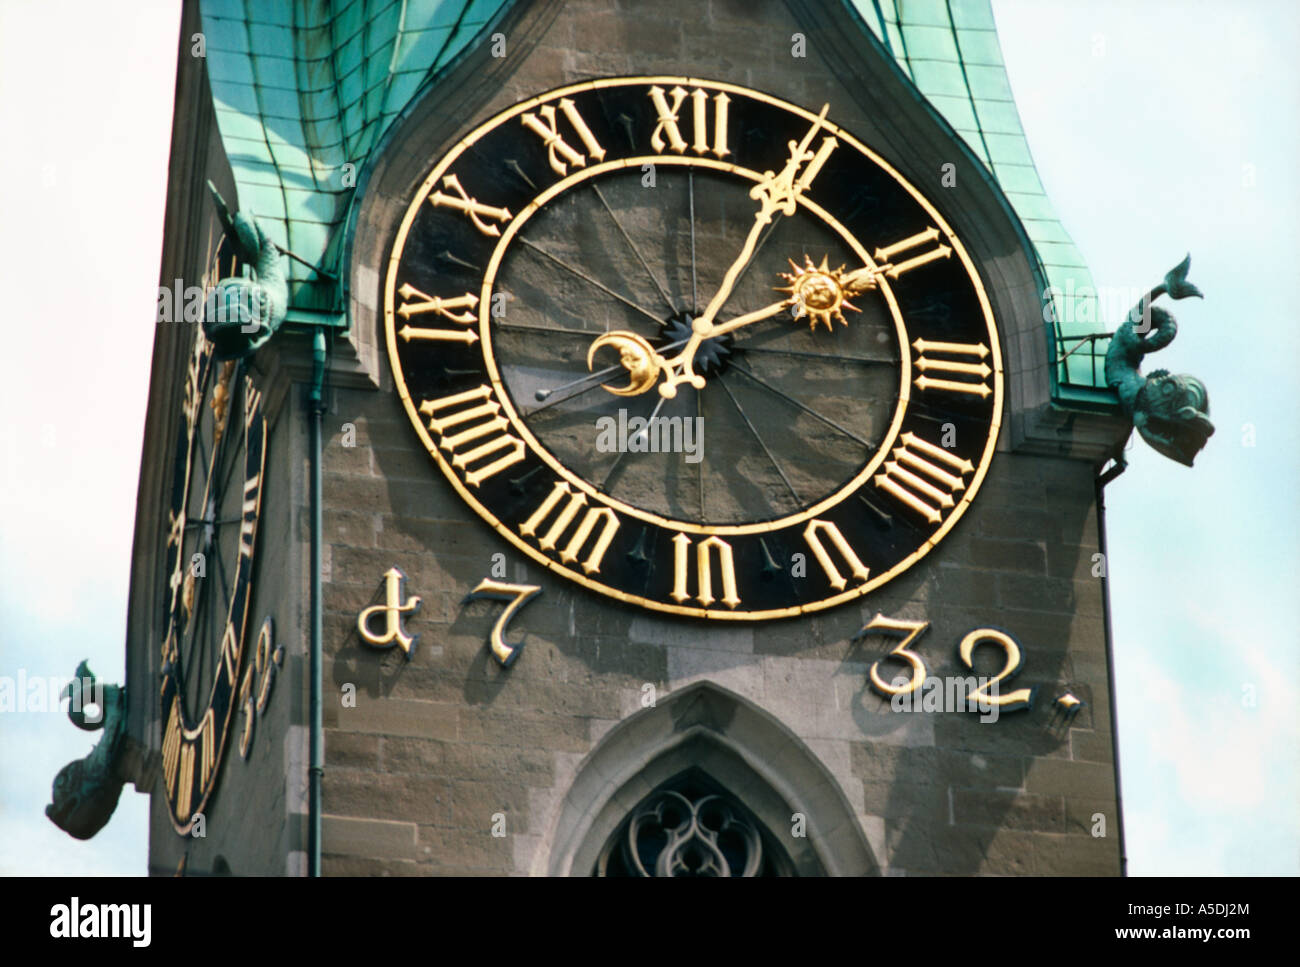 Large Clock Face Built In 1732 Largest Clock Face In The World